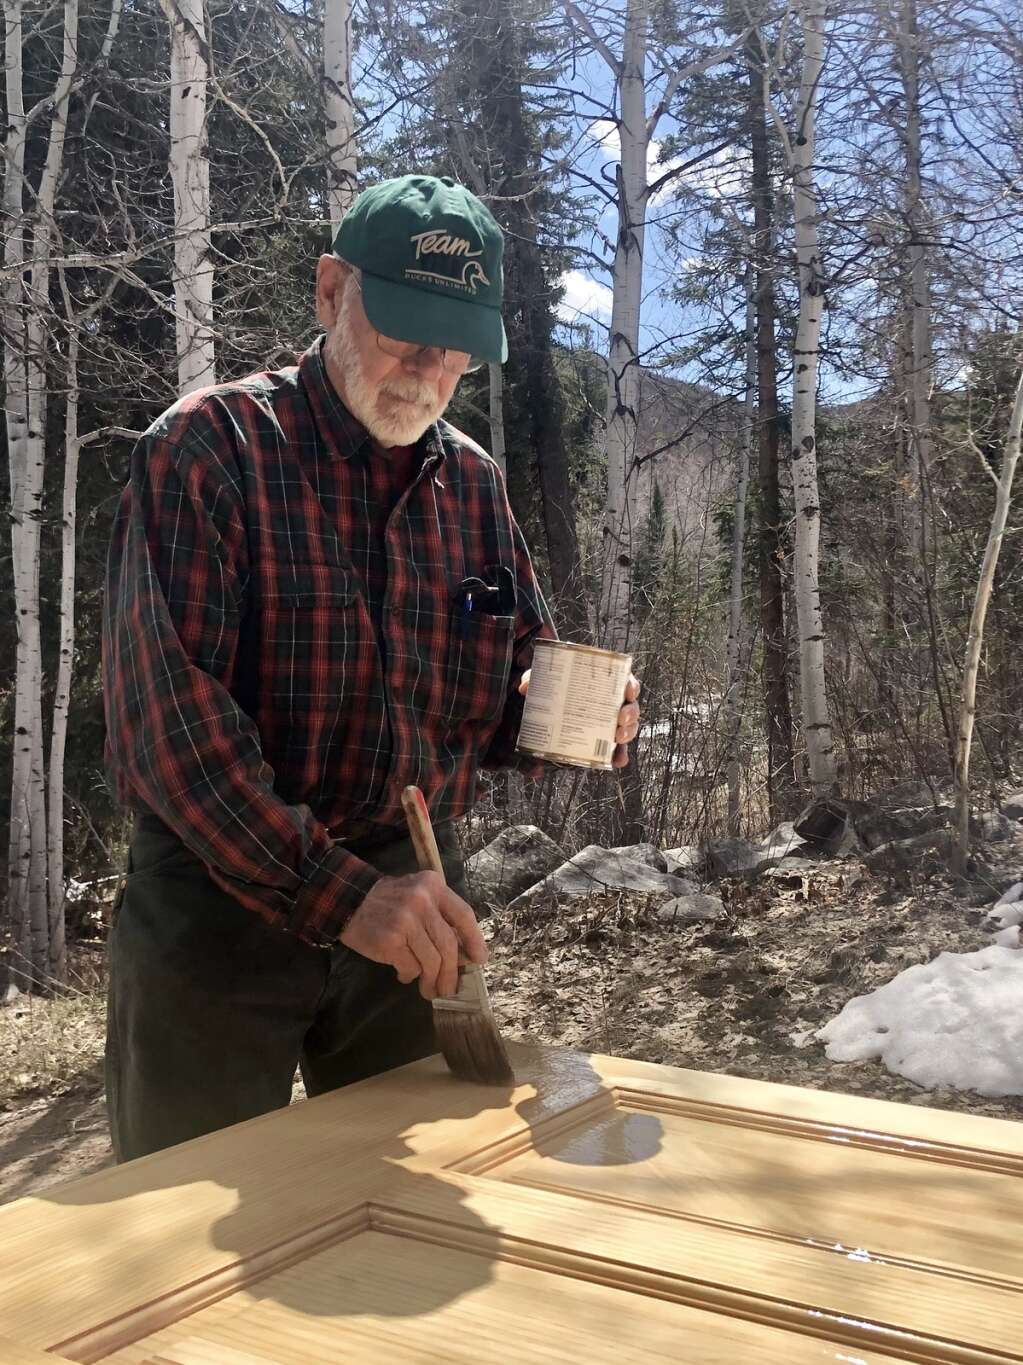 Craton Burkholder stains a wooden door outside the main lodge at the Aspen Camp for the Deaf and Hard of Hearing in Old Snowmass on April 11, 2021. | Kaya Williams/The Aspen Times